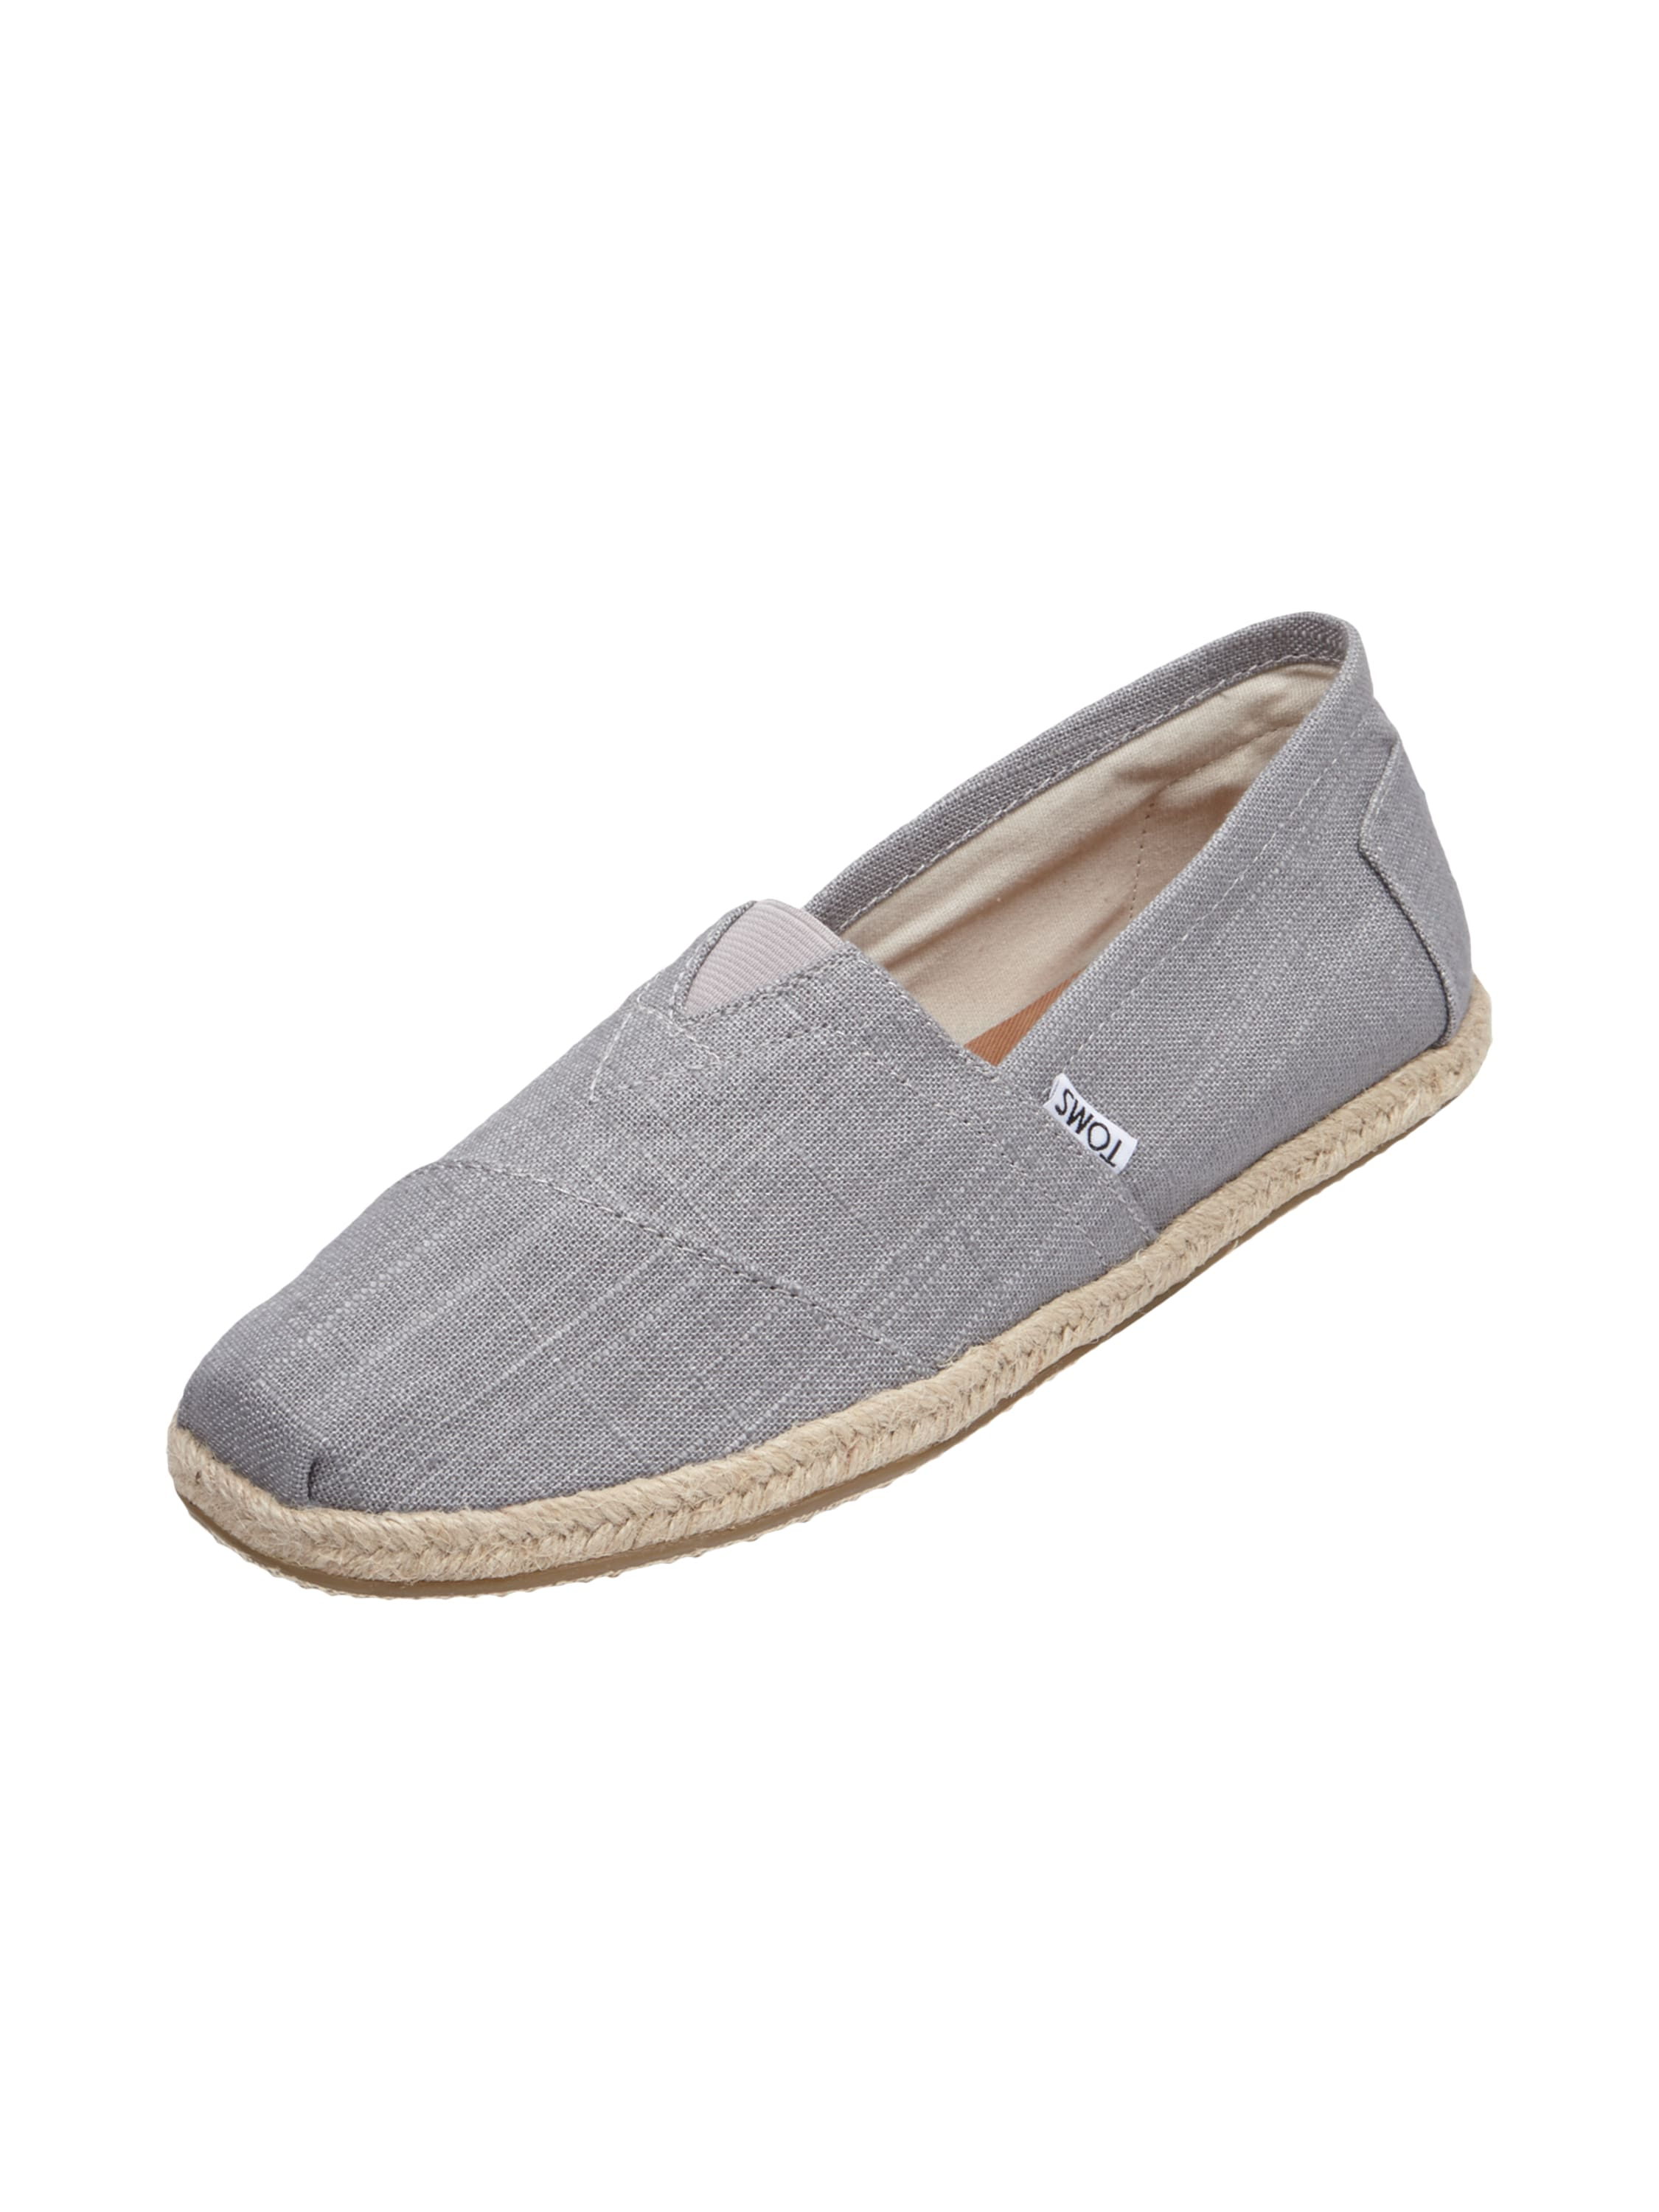 toms espadrilles aus leinen in grau schwarz online entdecken 9446447 p c at online. Black Bedroom Furniture Sets. Home Design Ideas